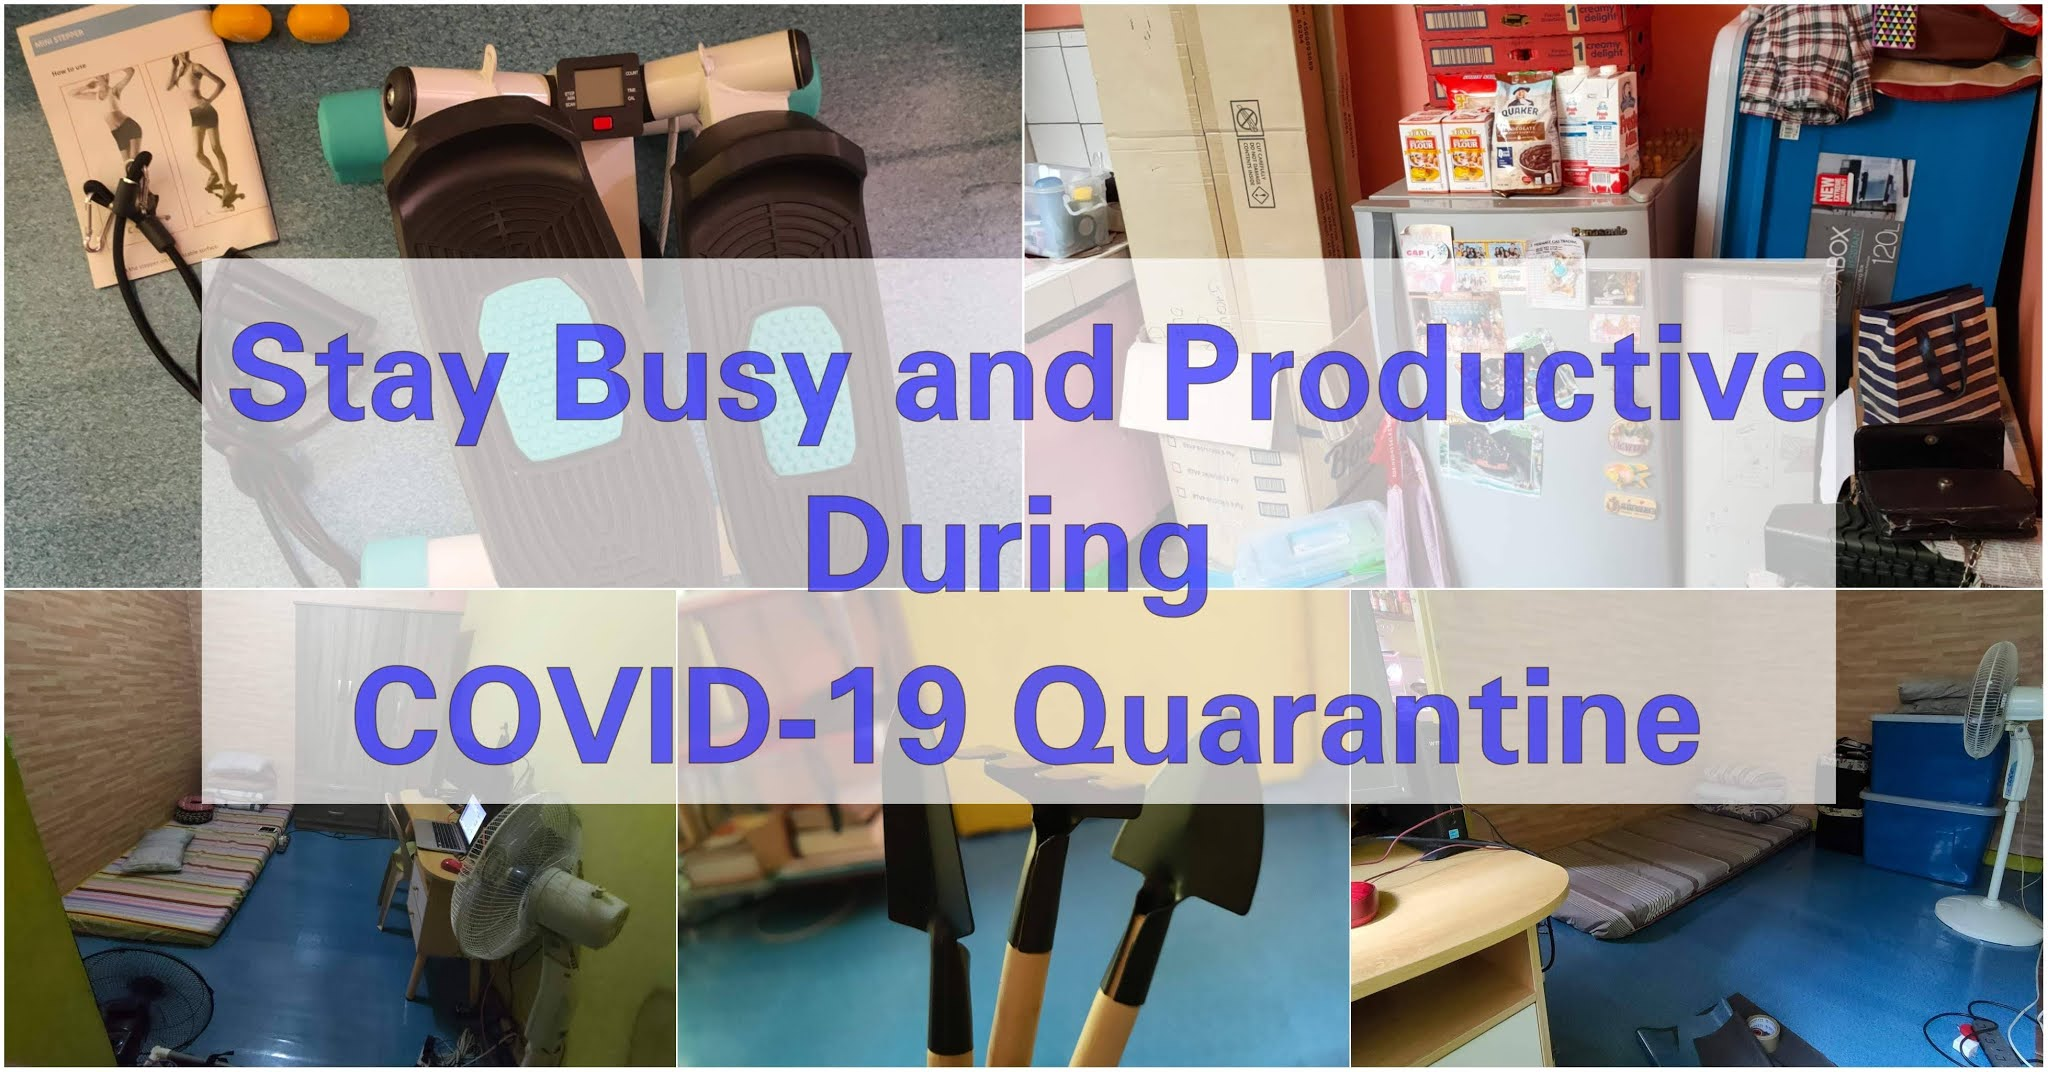 Stuck at Home Stay Busy and Productive During COVID-19 Quarantine blog post cover